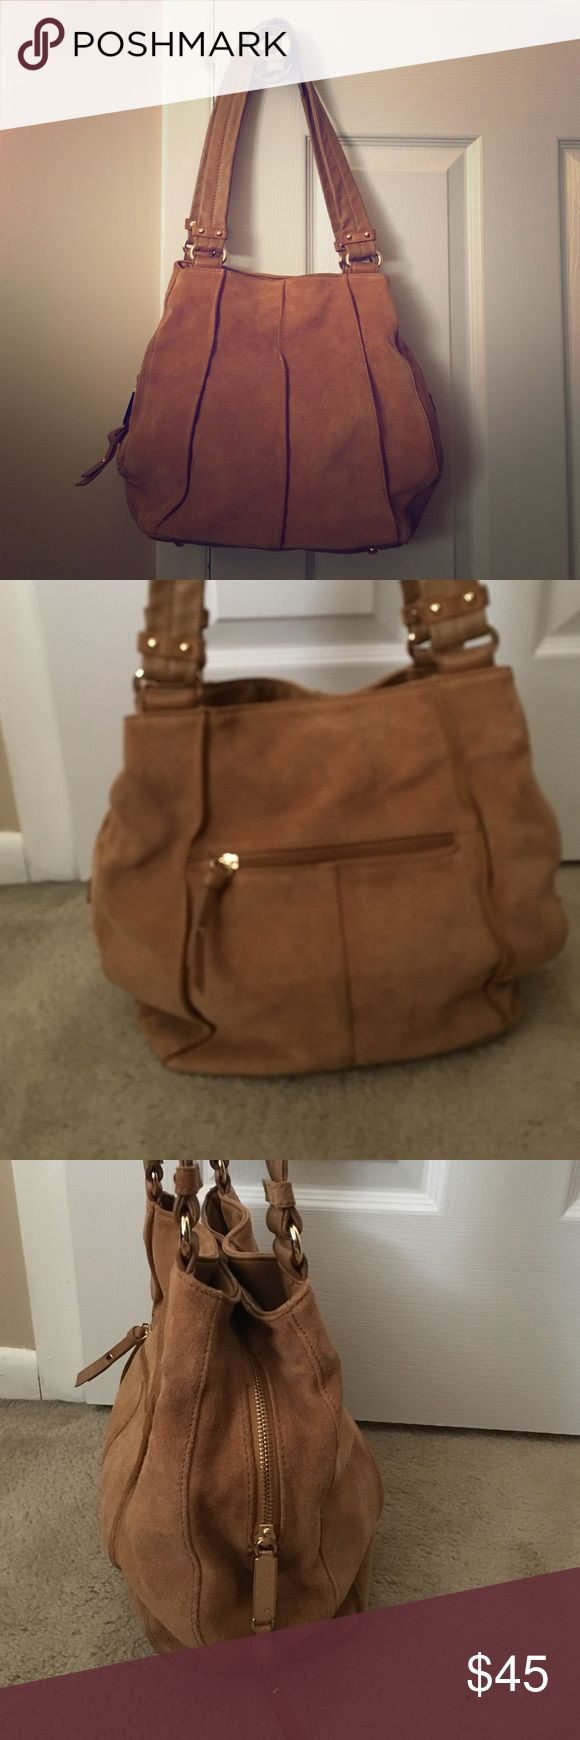 Tignanello handbag Tignanello camel colored suede handbag. Two straps. Main center compartment has zipper. Two large snap compartments that are magnetized. Back has zipper compartment as well. Great condition! Tignanello Bags Shoulder Bags